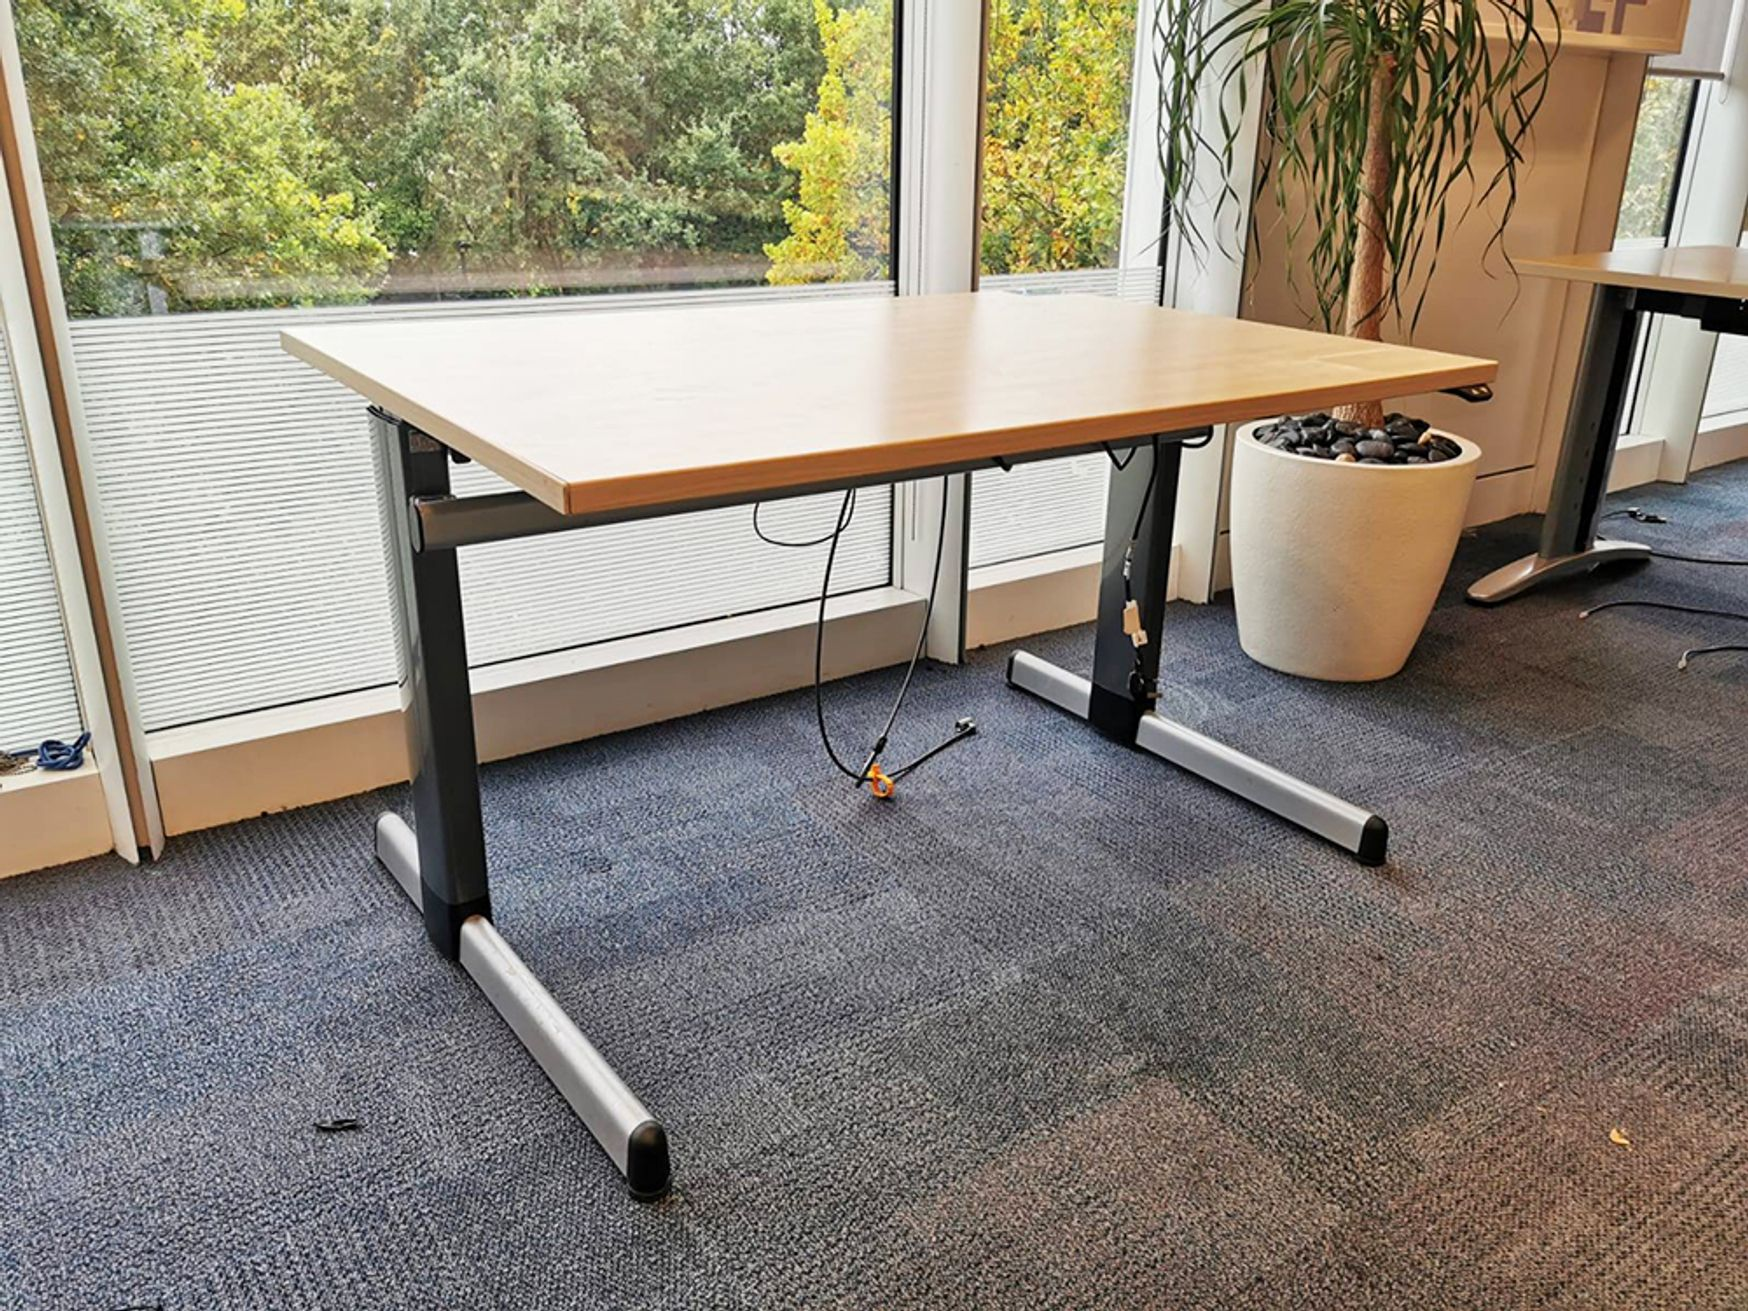 Used 1200mm Electric Height Adjustable Sit Stand Desk